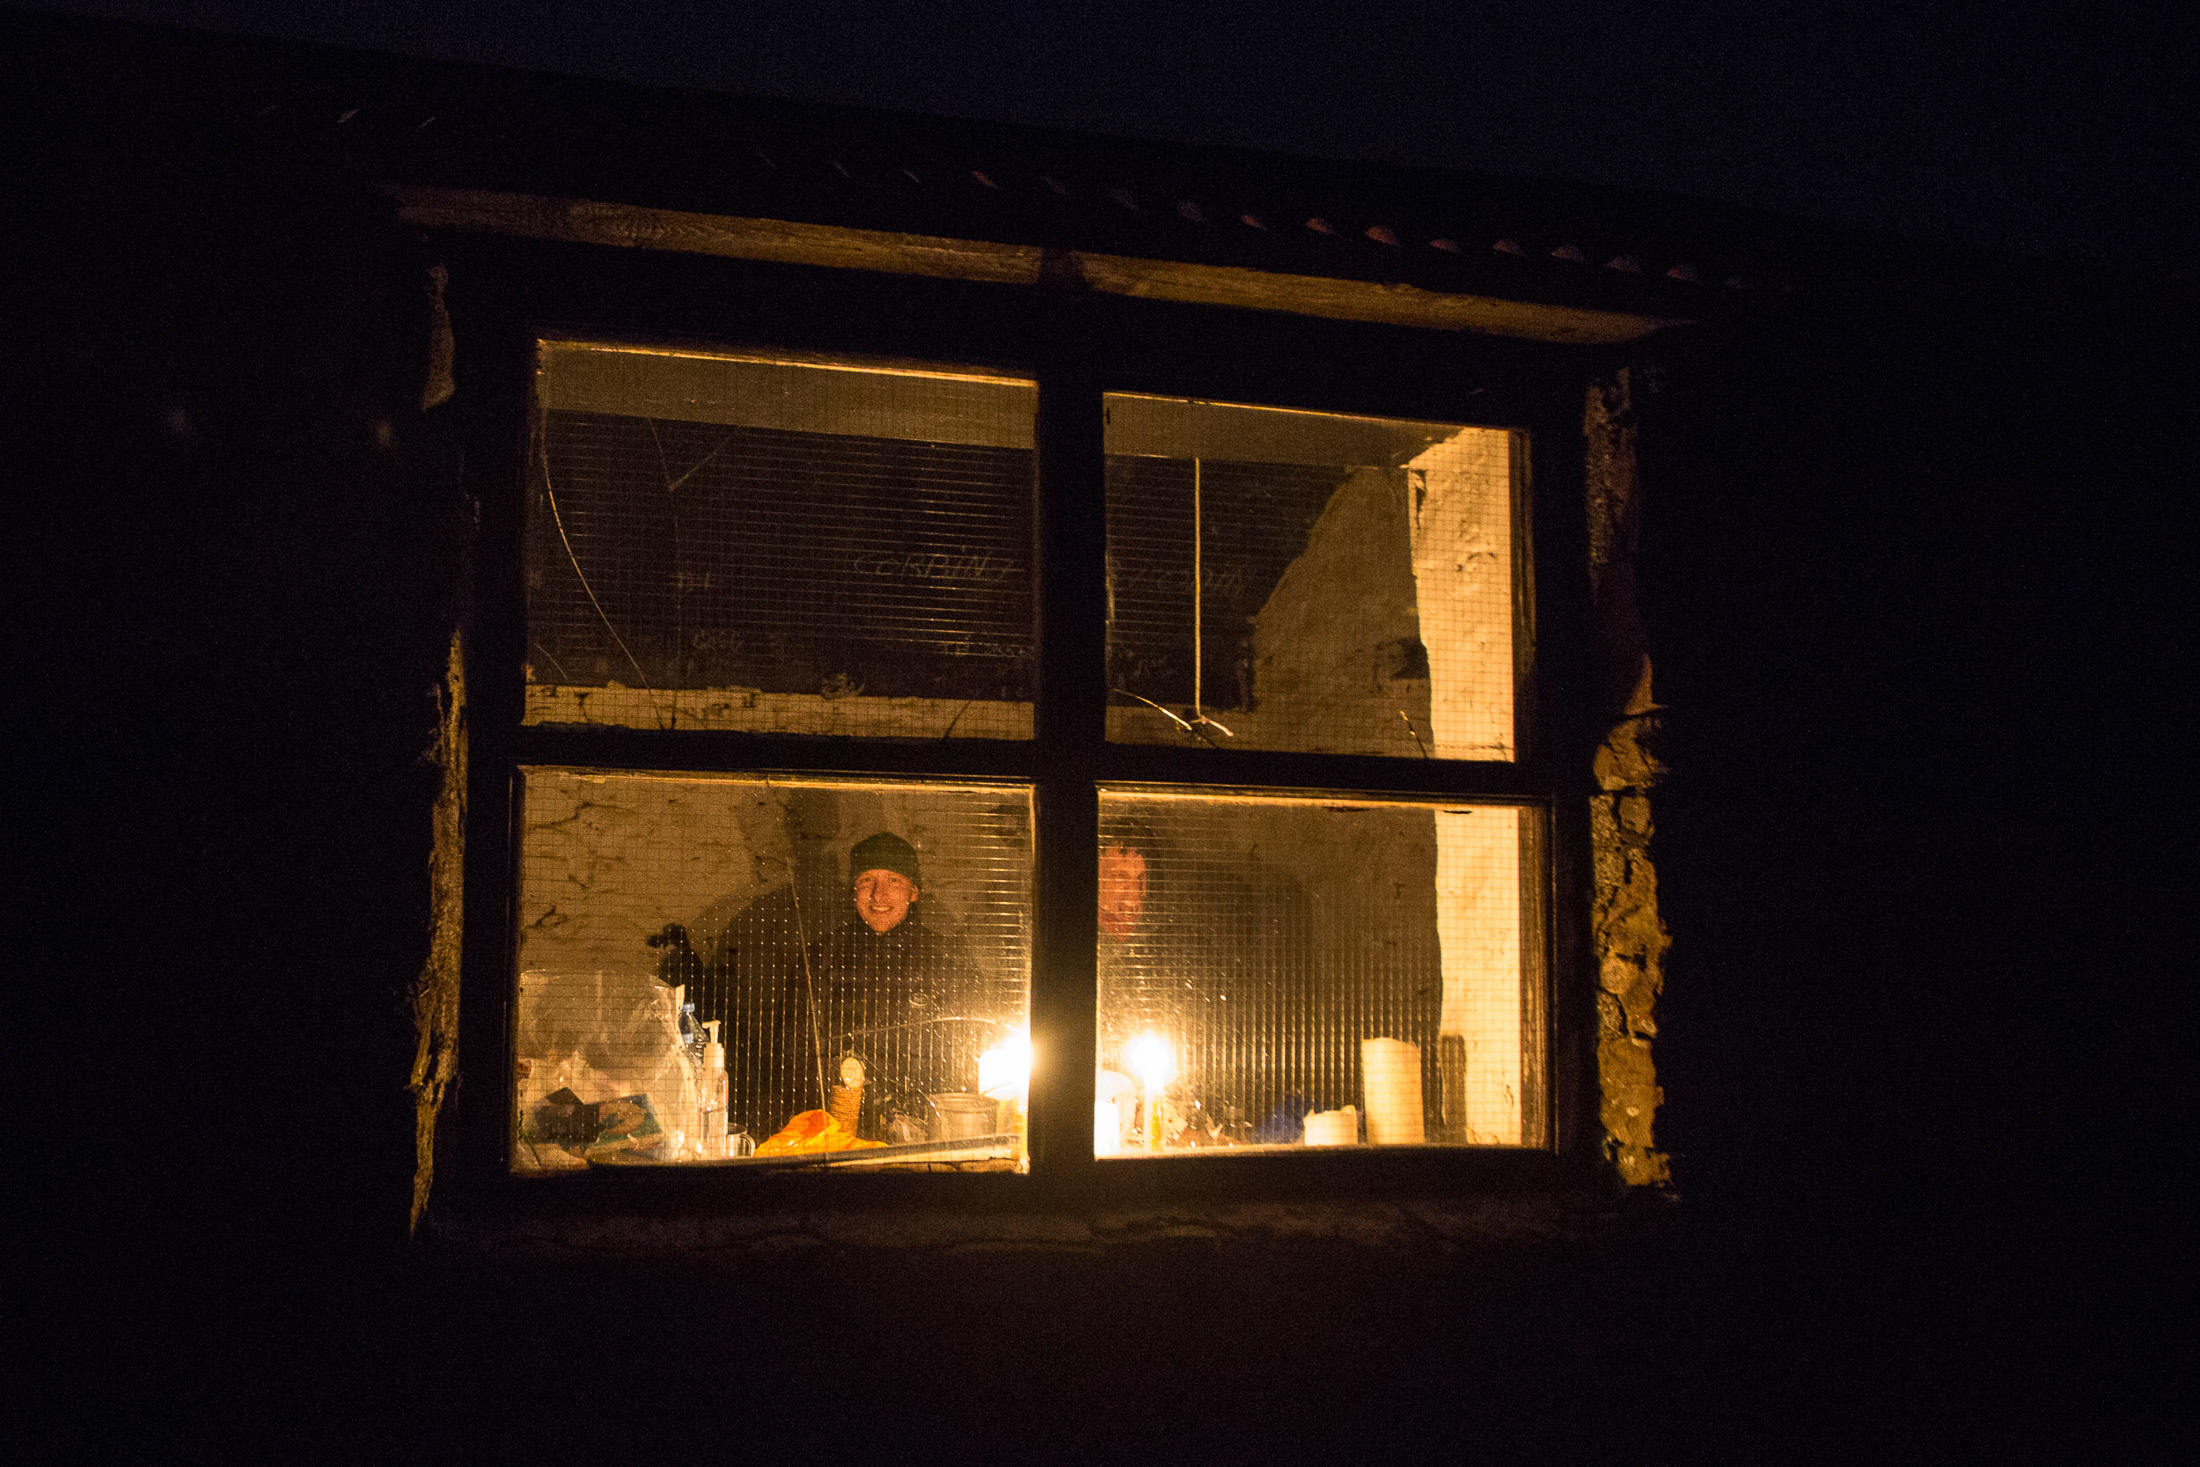 Me and Mark looking cosy inside. © Alex Hyde 2017